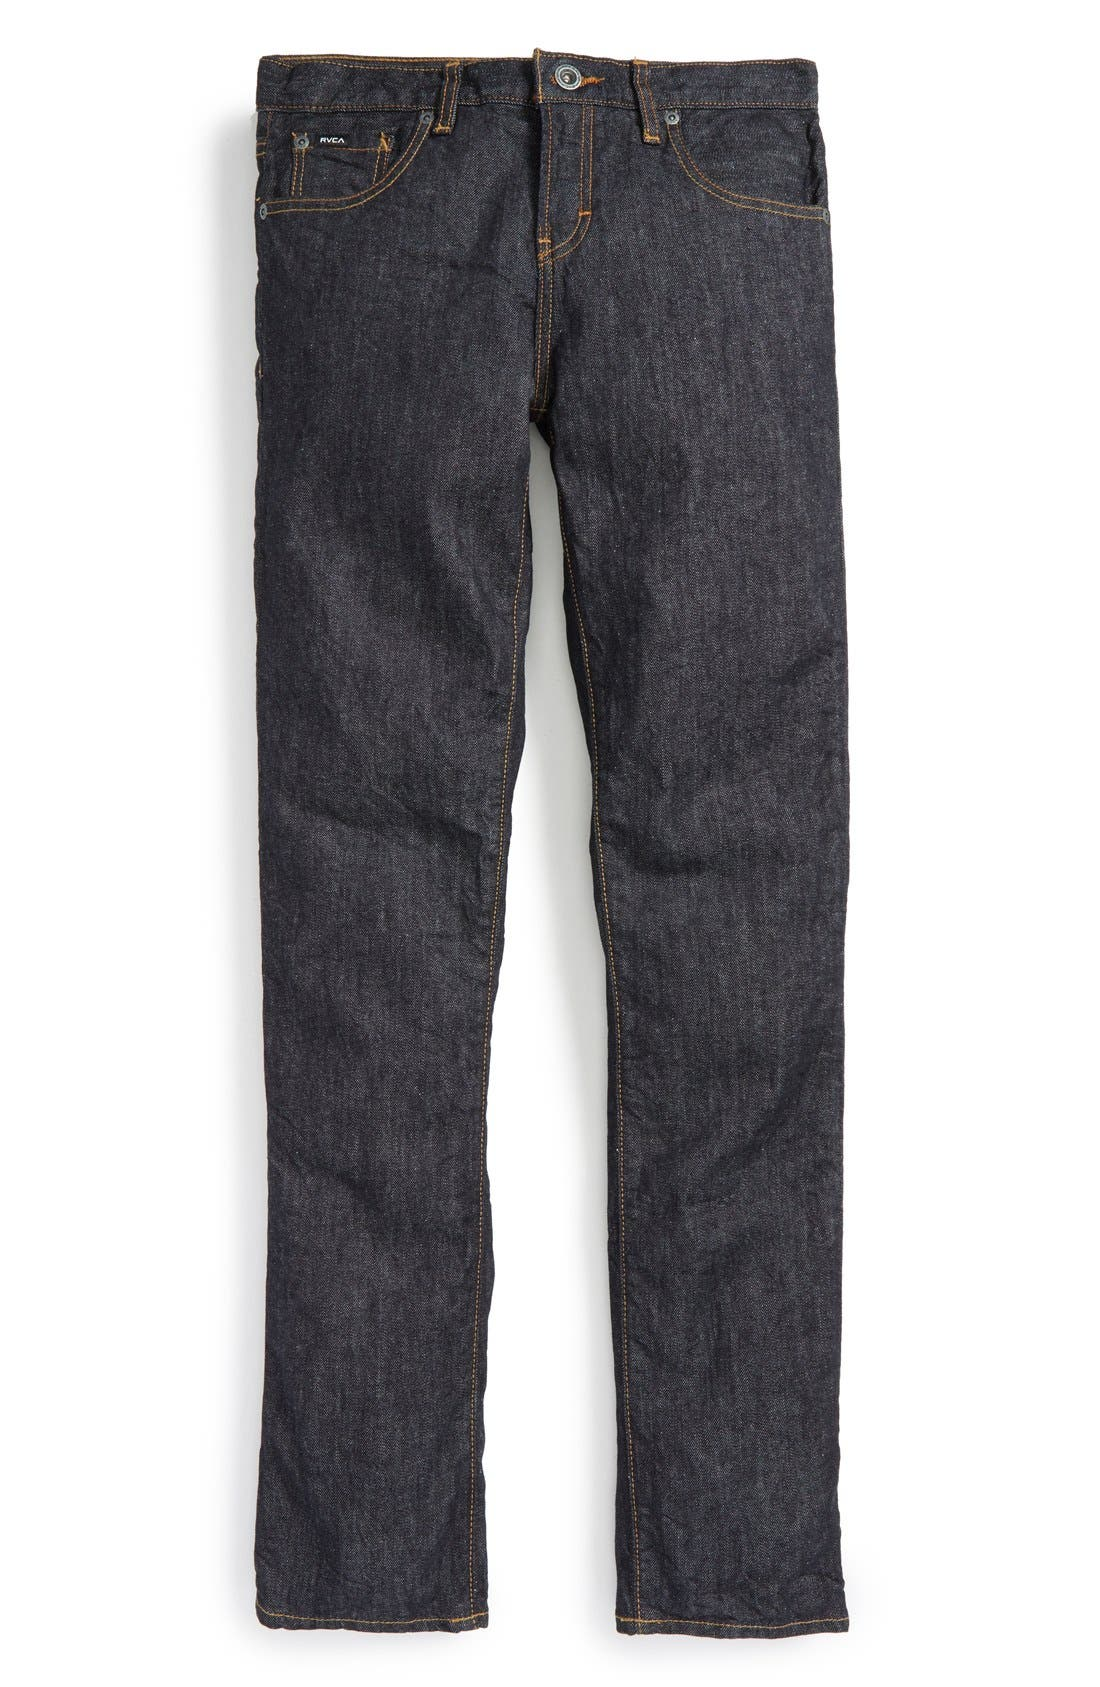 RVCA 'Daggers' Slim Fit Jeans (Big Boys)